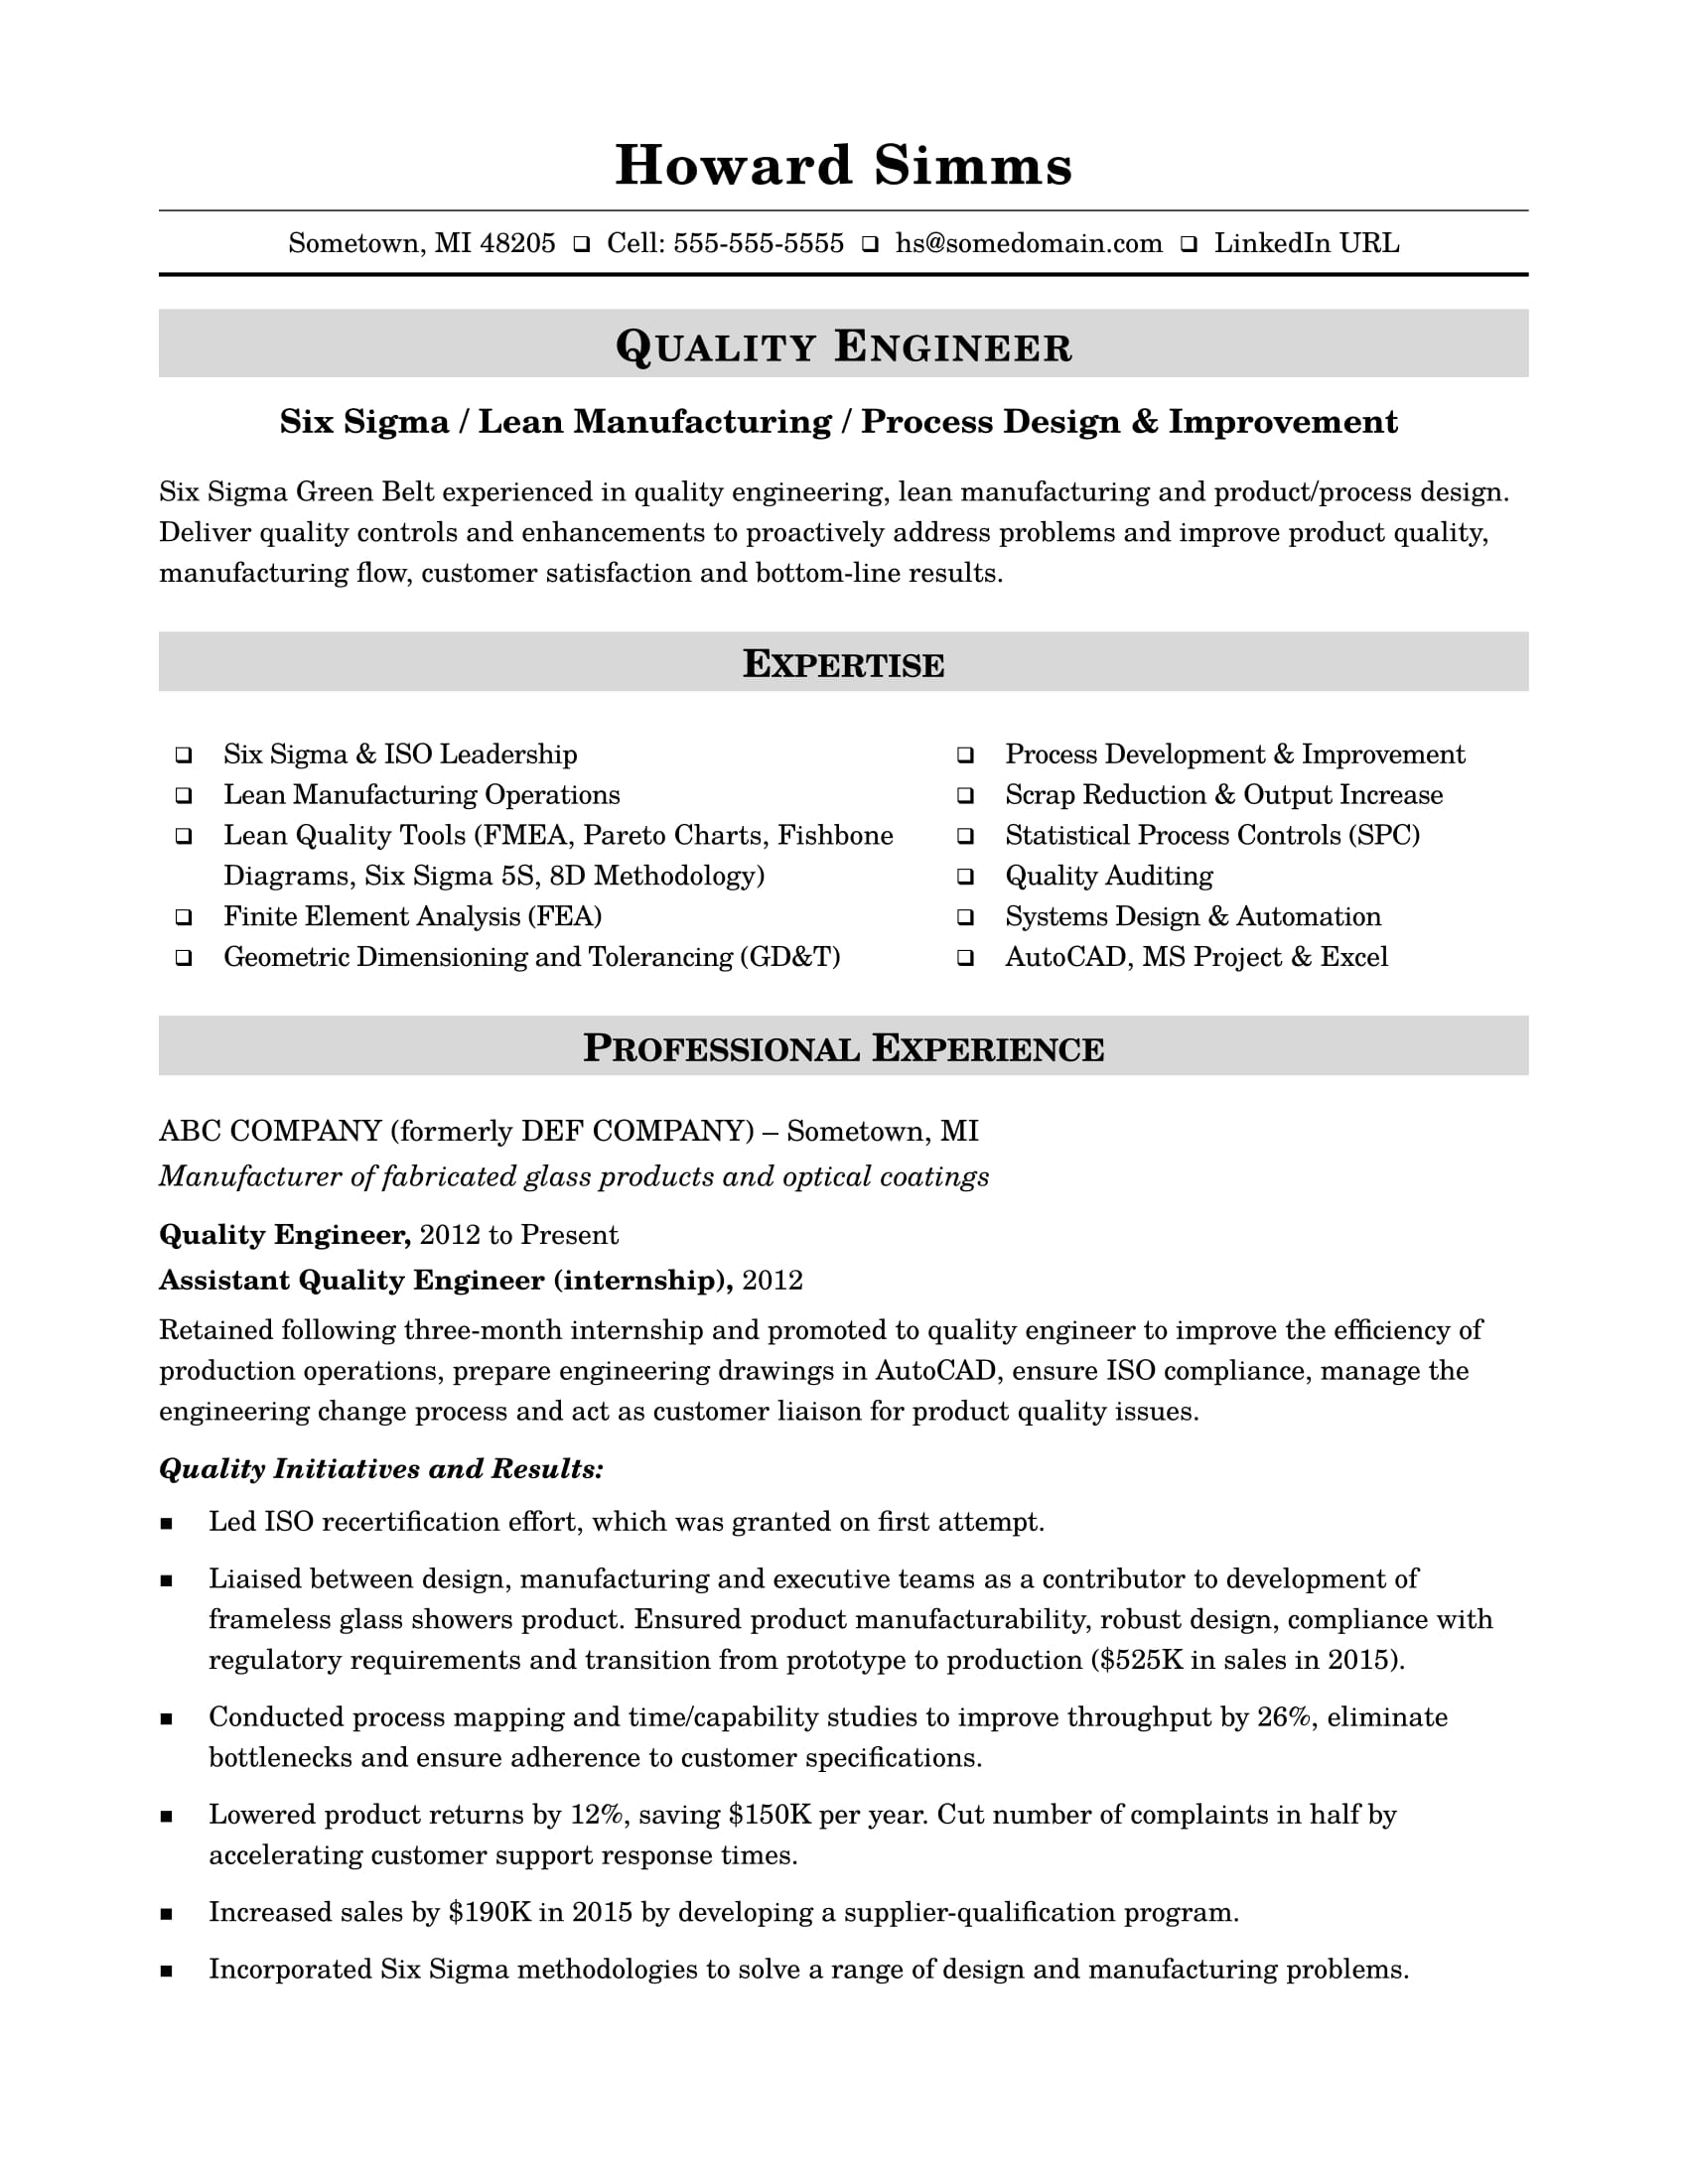 Resume Writing For Customer Service Jobs